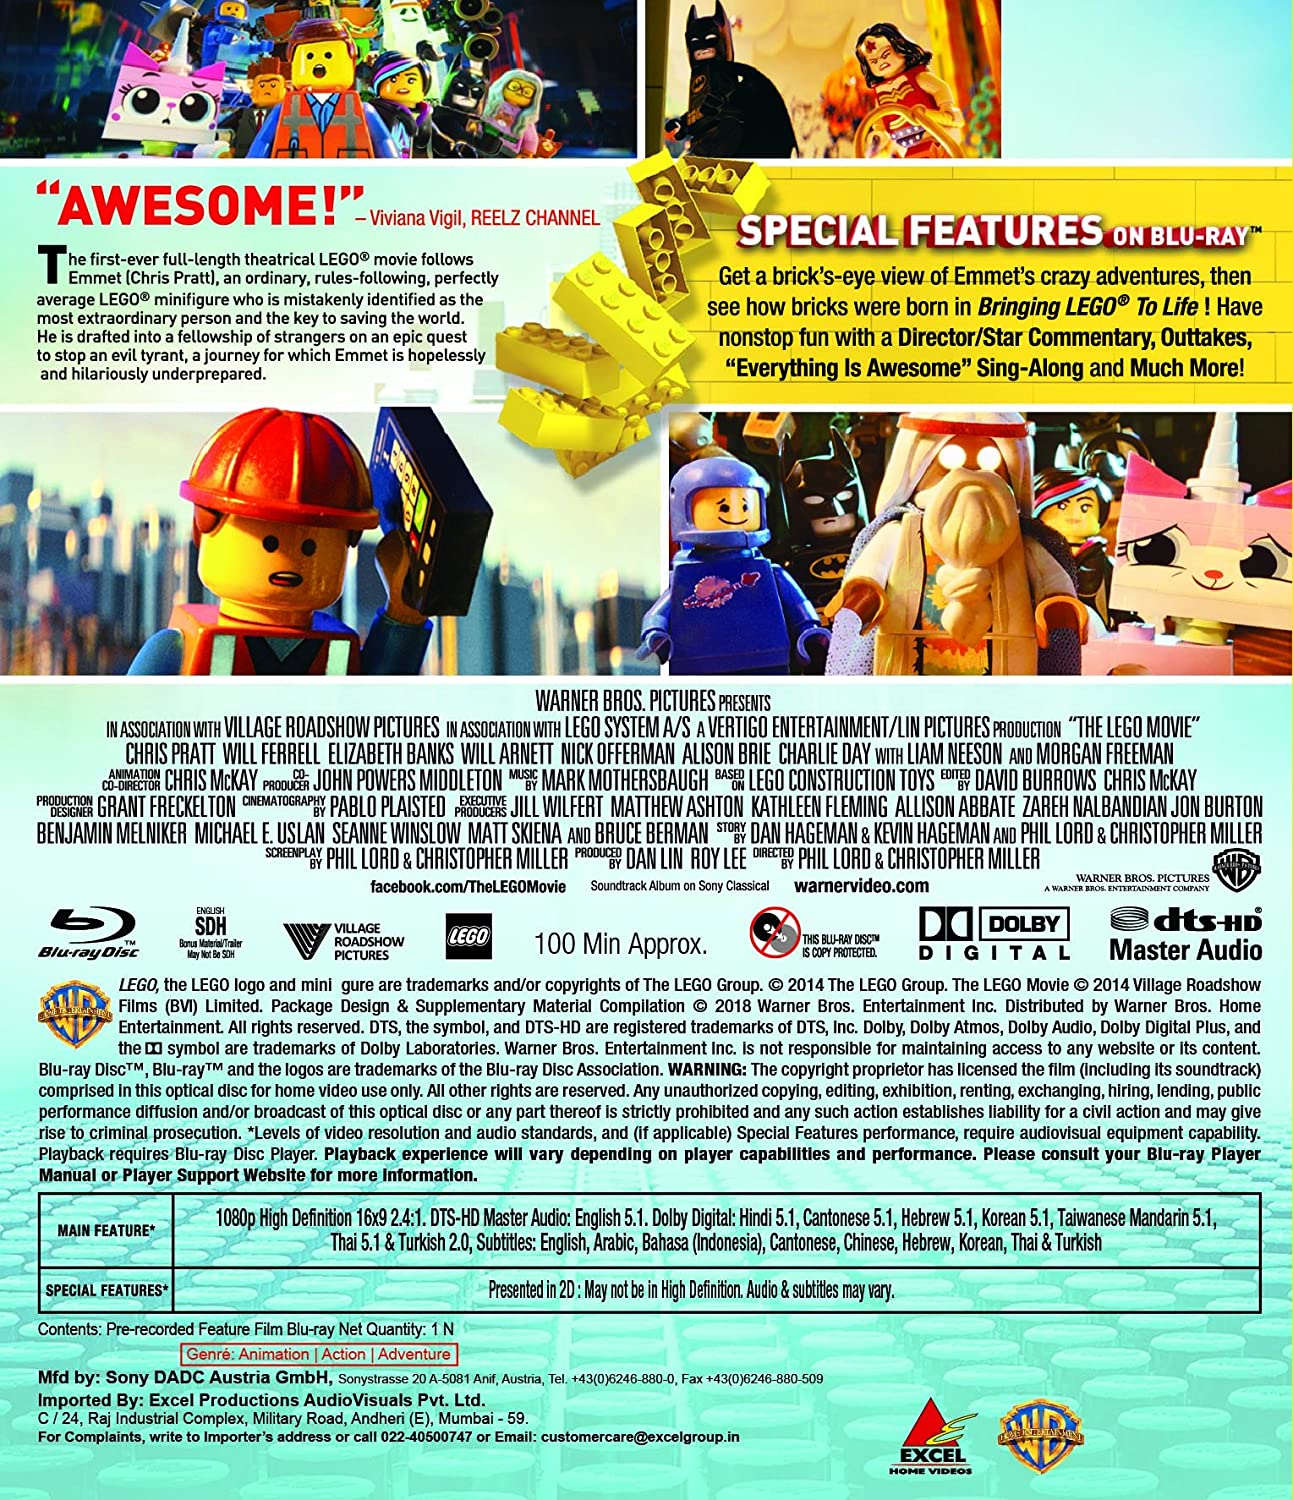 Amazon.in: Buy The LEGO Movie DVD, Blu-ray Online at Best Prices in ...